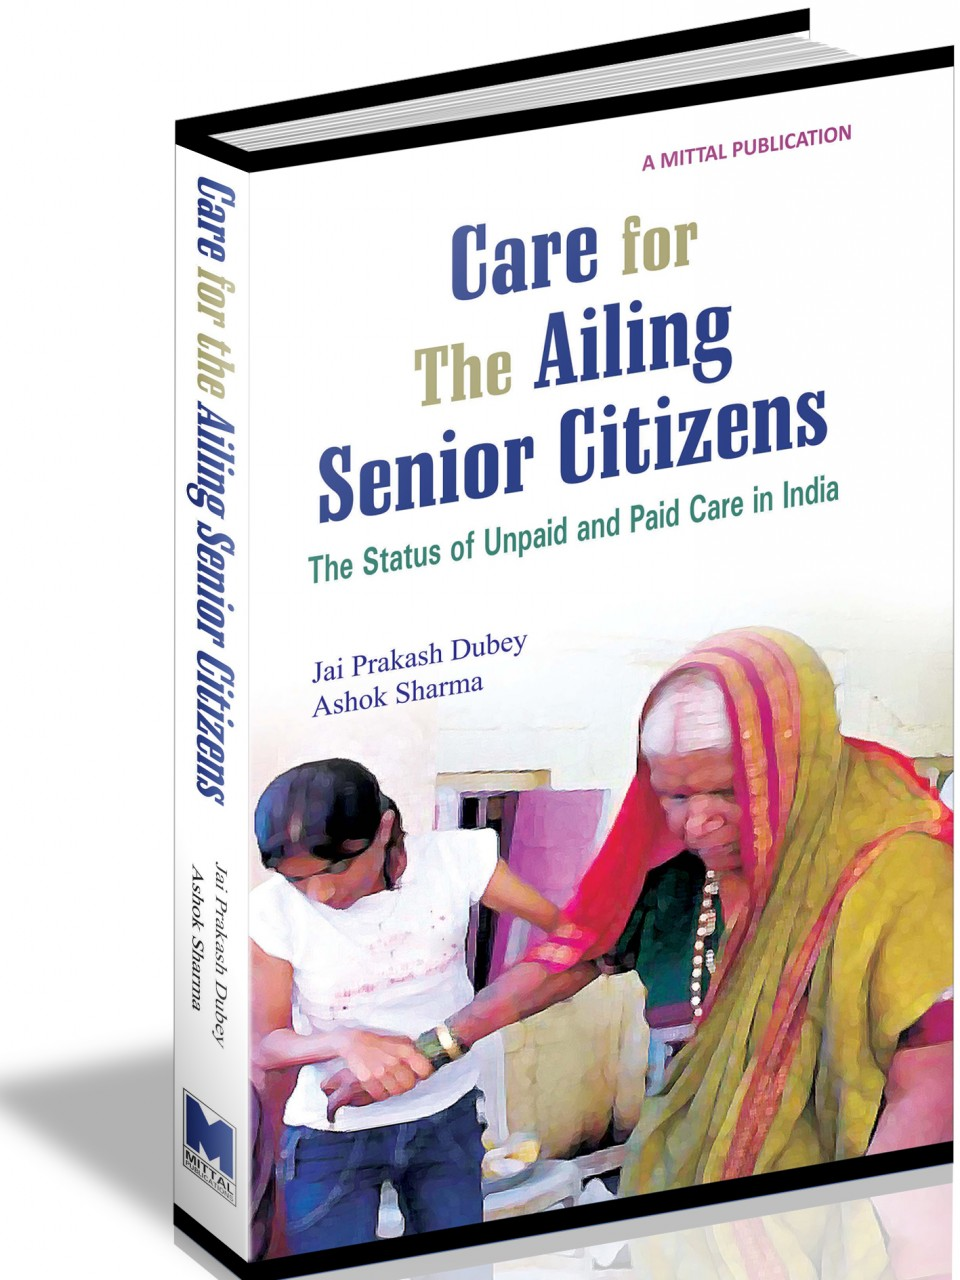 care-for-the-ailing-senior-citizens